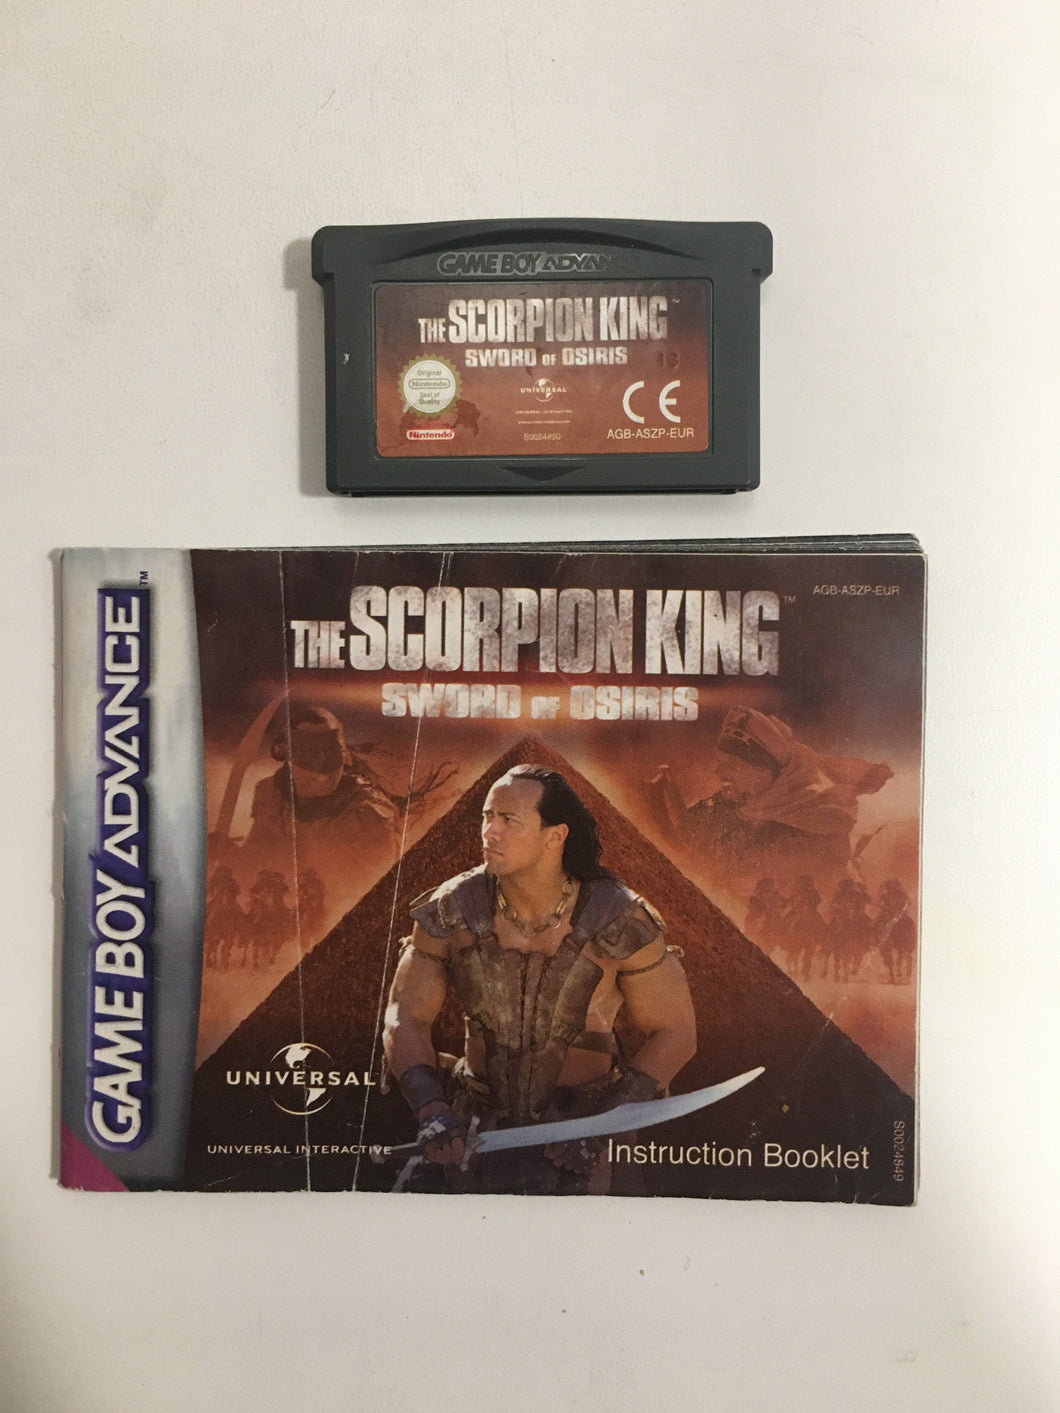 the scorpion king sword of osiris nintendo Game boy advance EUR avec notice